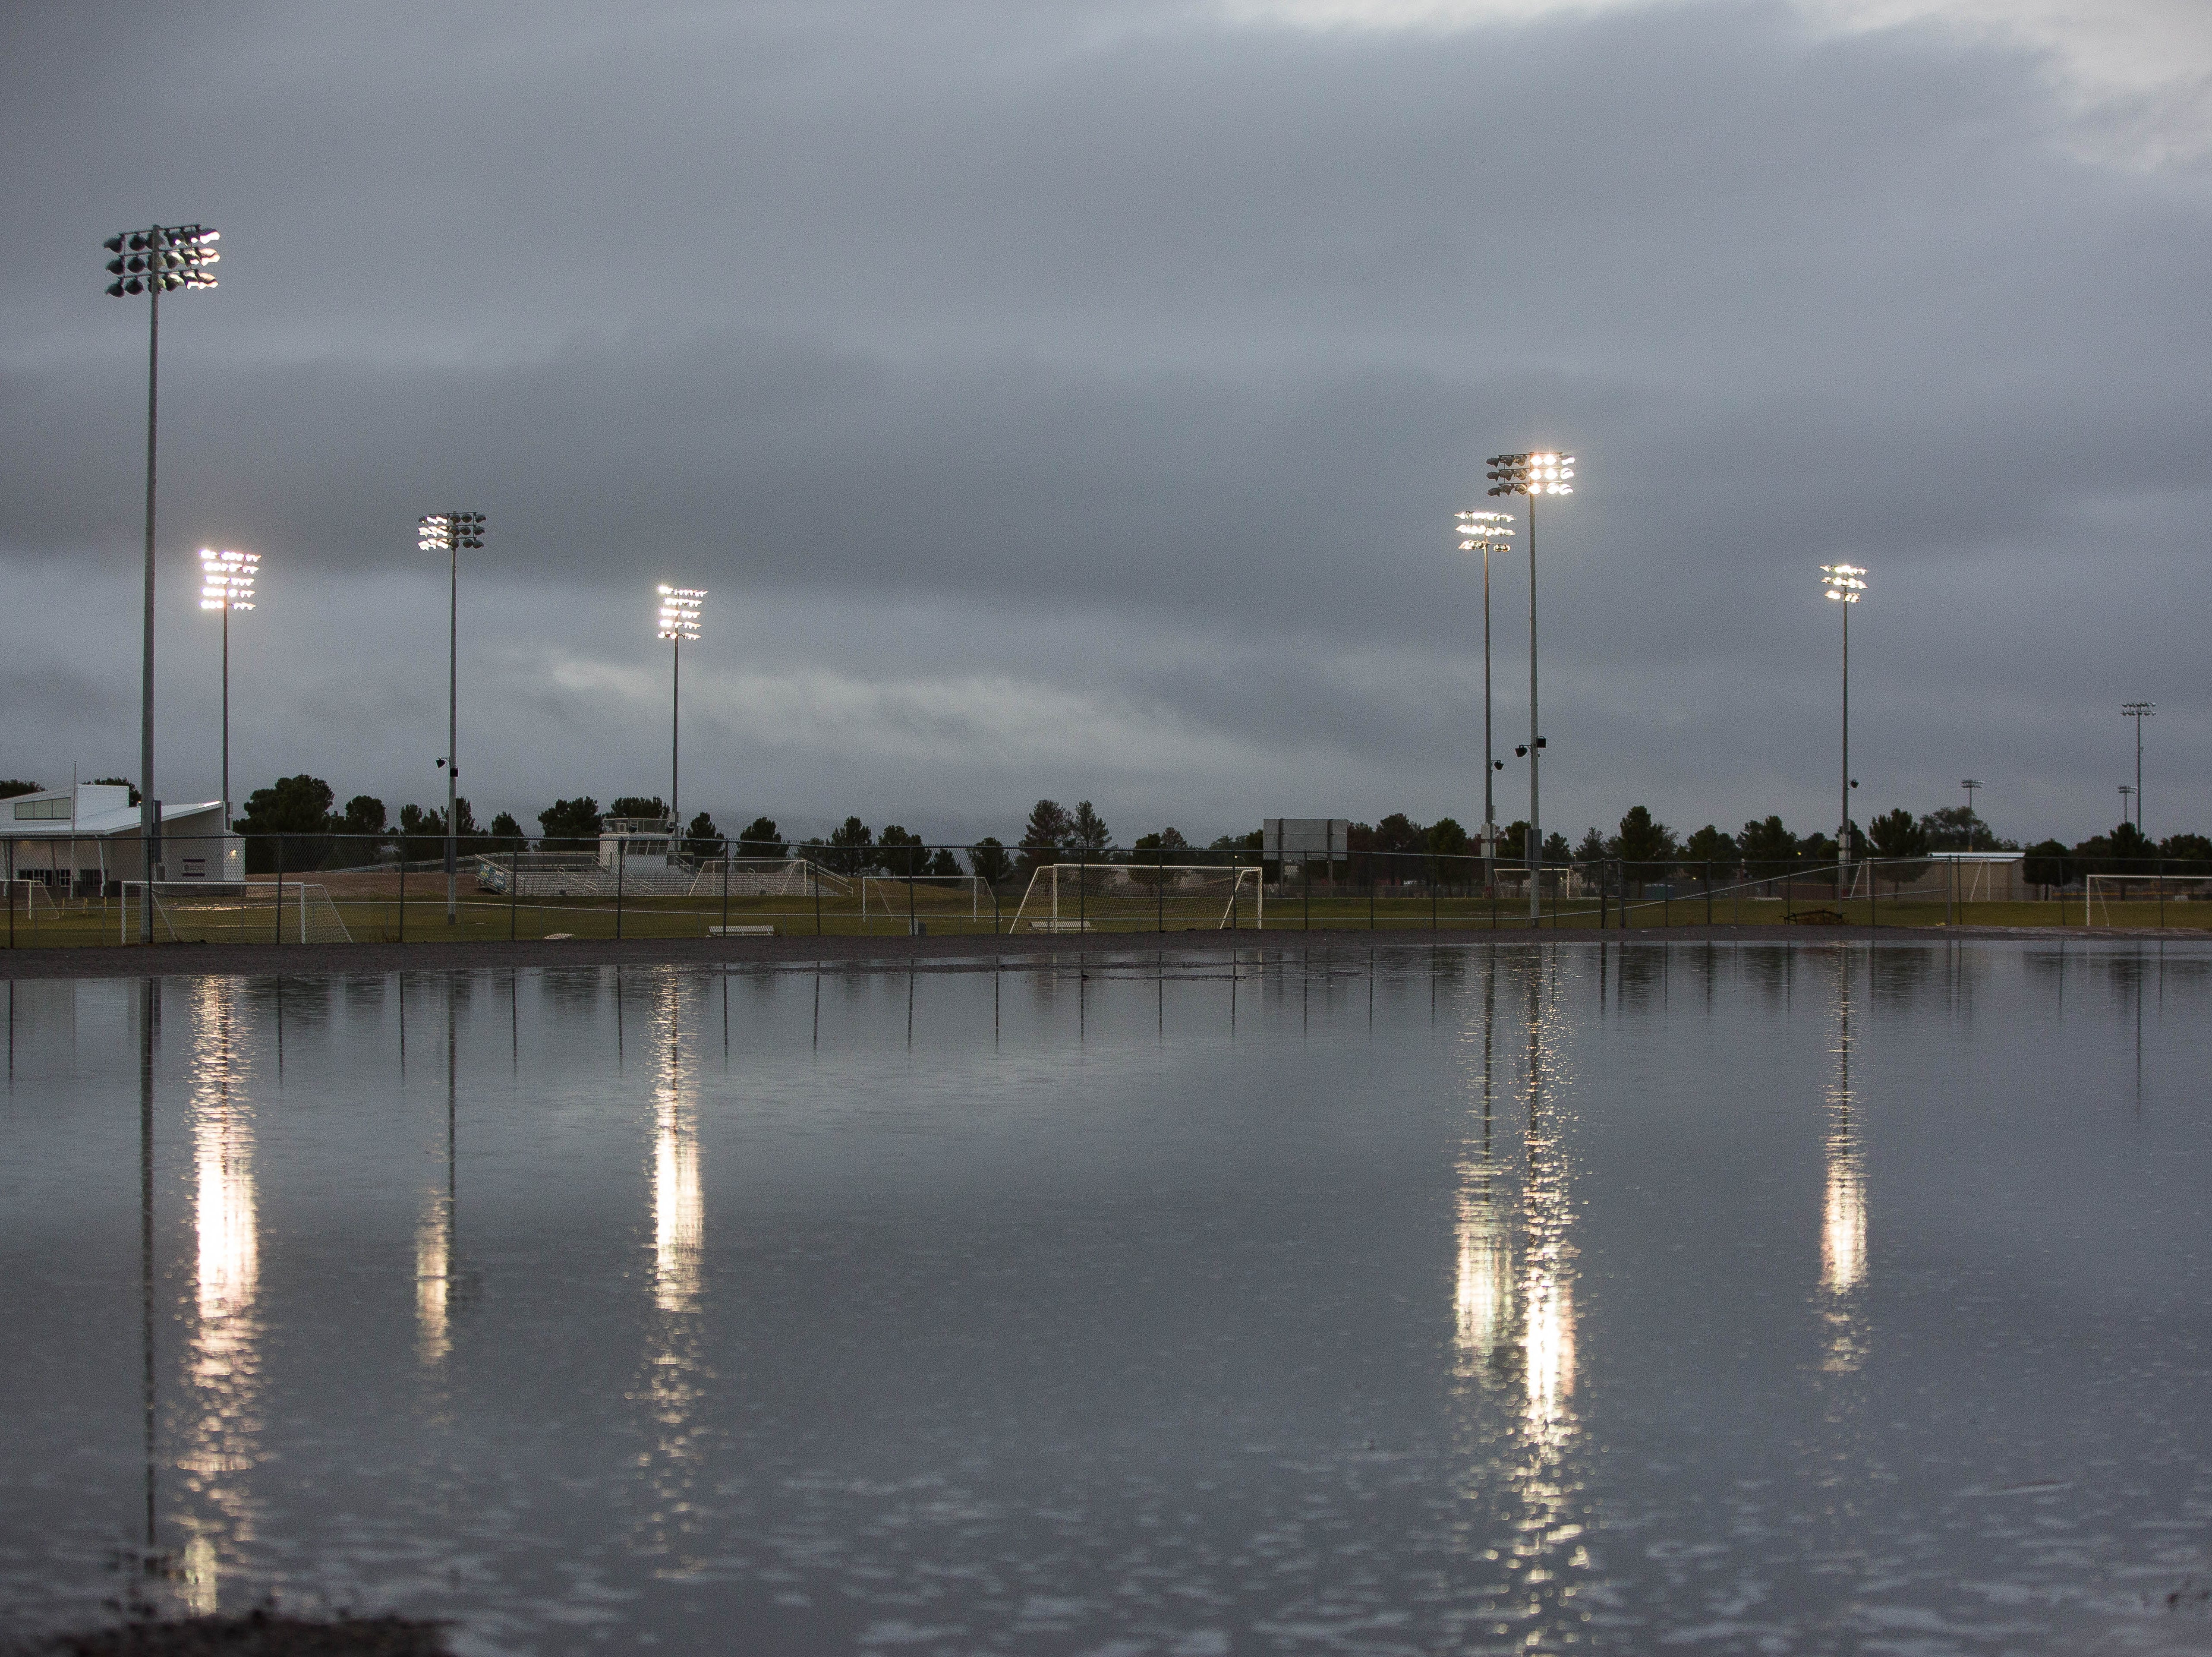 Heavy rainfall in the Las Cruces area Tuesday, flooded fields and parking lots around Doña Ana County, seen here is a gravel lot filling with water Tuesday night near the Field of Dreams. The rains also filled arroyo in the area including one in the Picacho Hills area. Tuesday October 23, 2018.